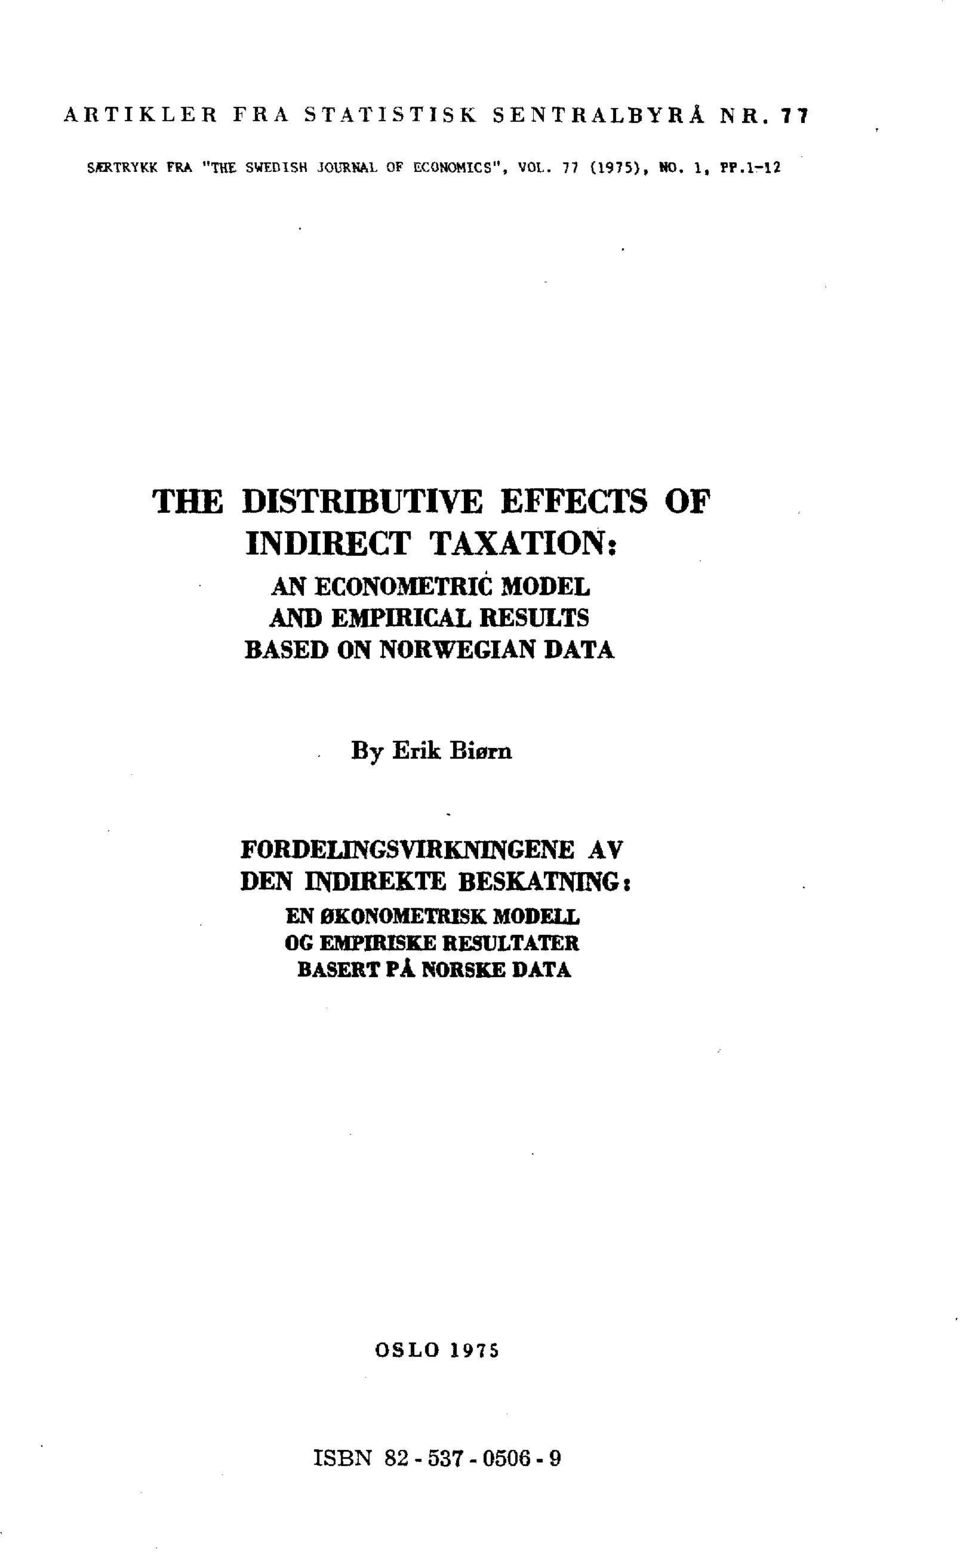 1-12 TIDE DISTRIBUTIVE EFFECTS OF INDIRECT TAXATION: AN ECONOMETRIC MODEL AND EMPIRICAL RESULTS